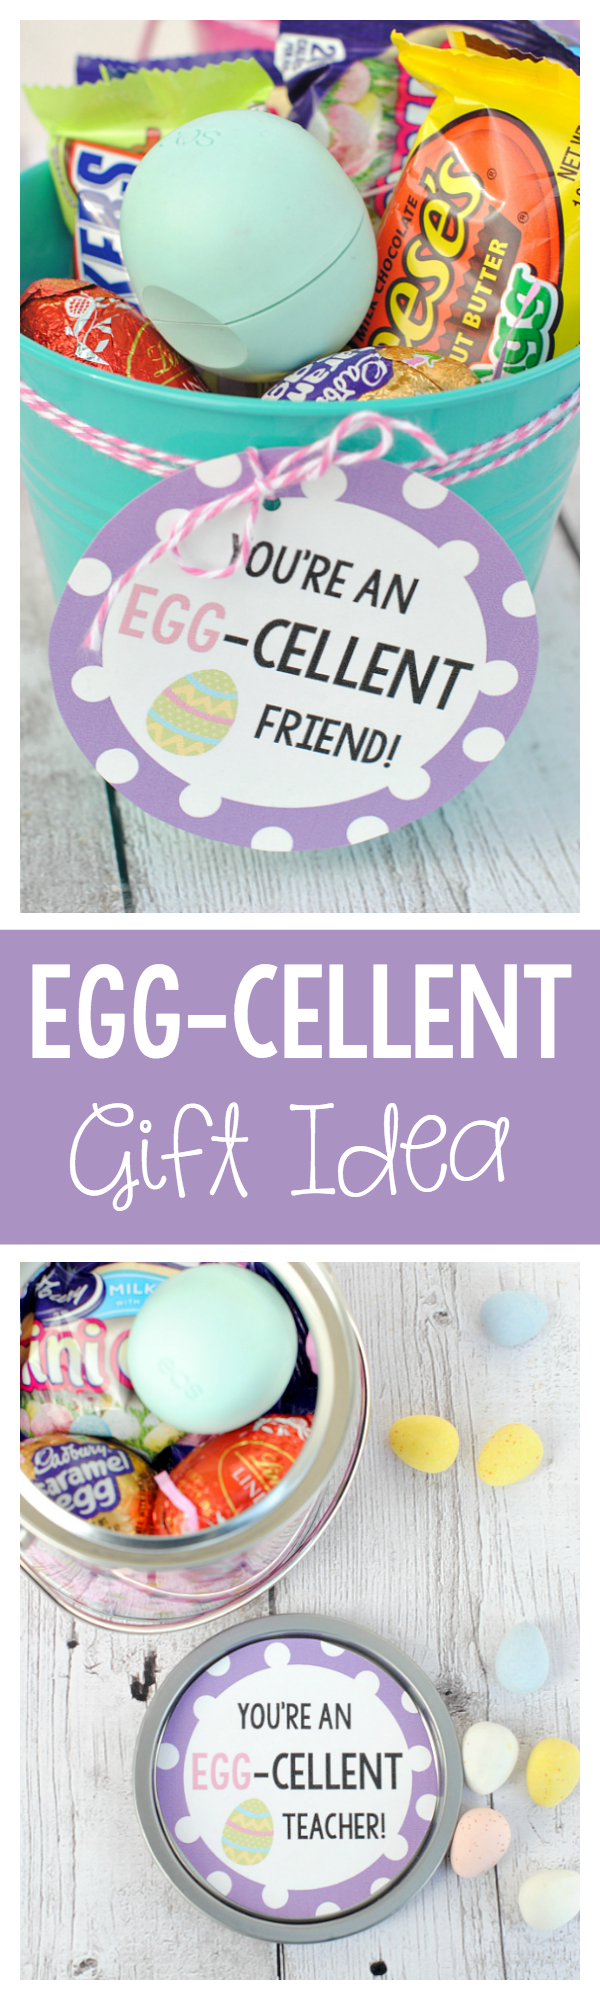 Egg cellent easter gift idea easter gift and holidays egg cellent easter gift idea negle Gallery